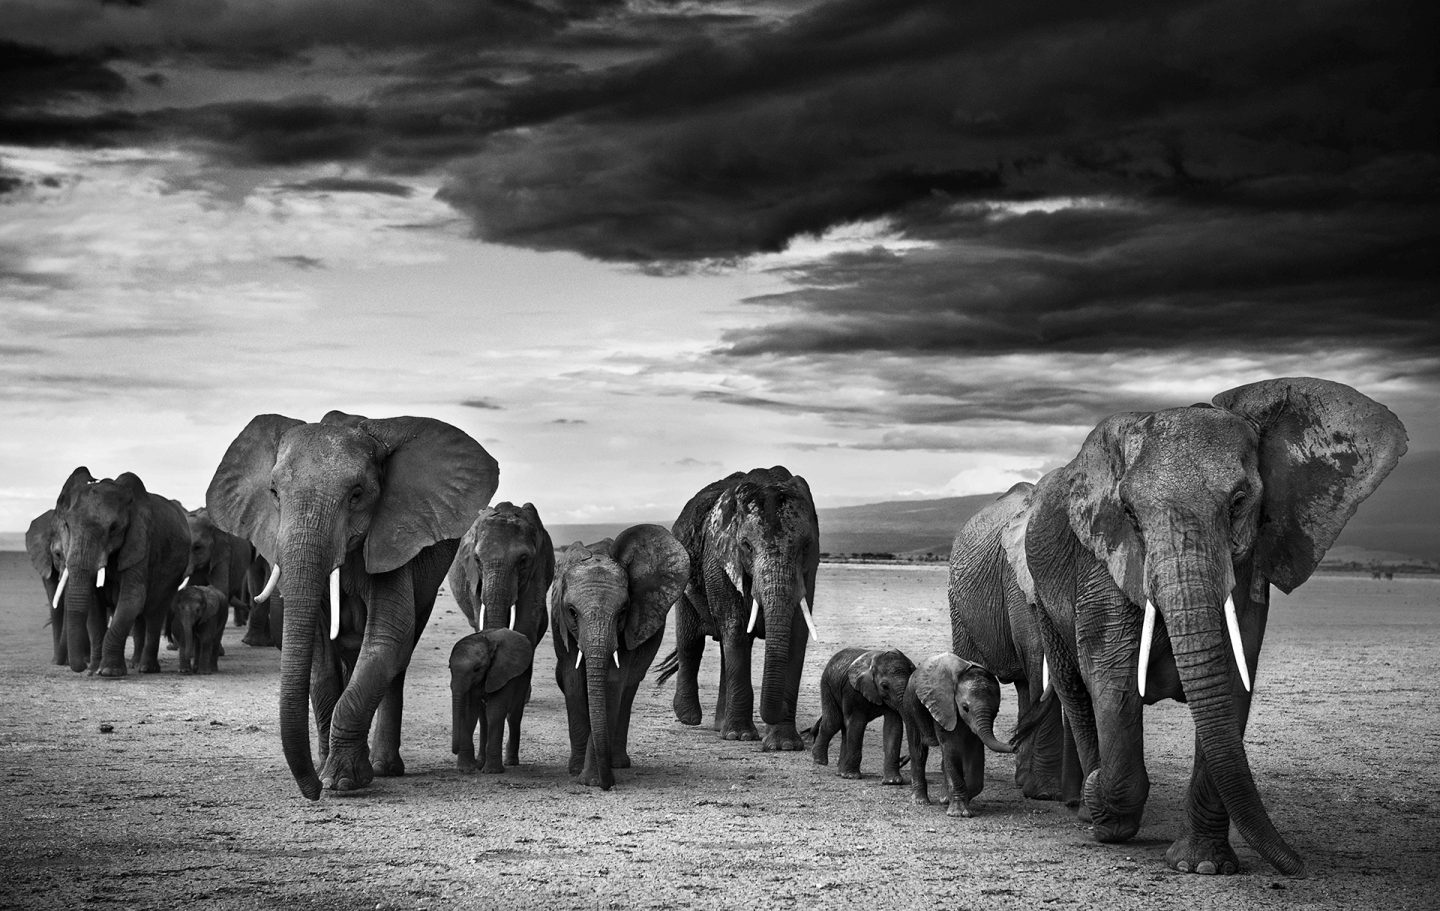 Family © David Yarrow